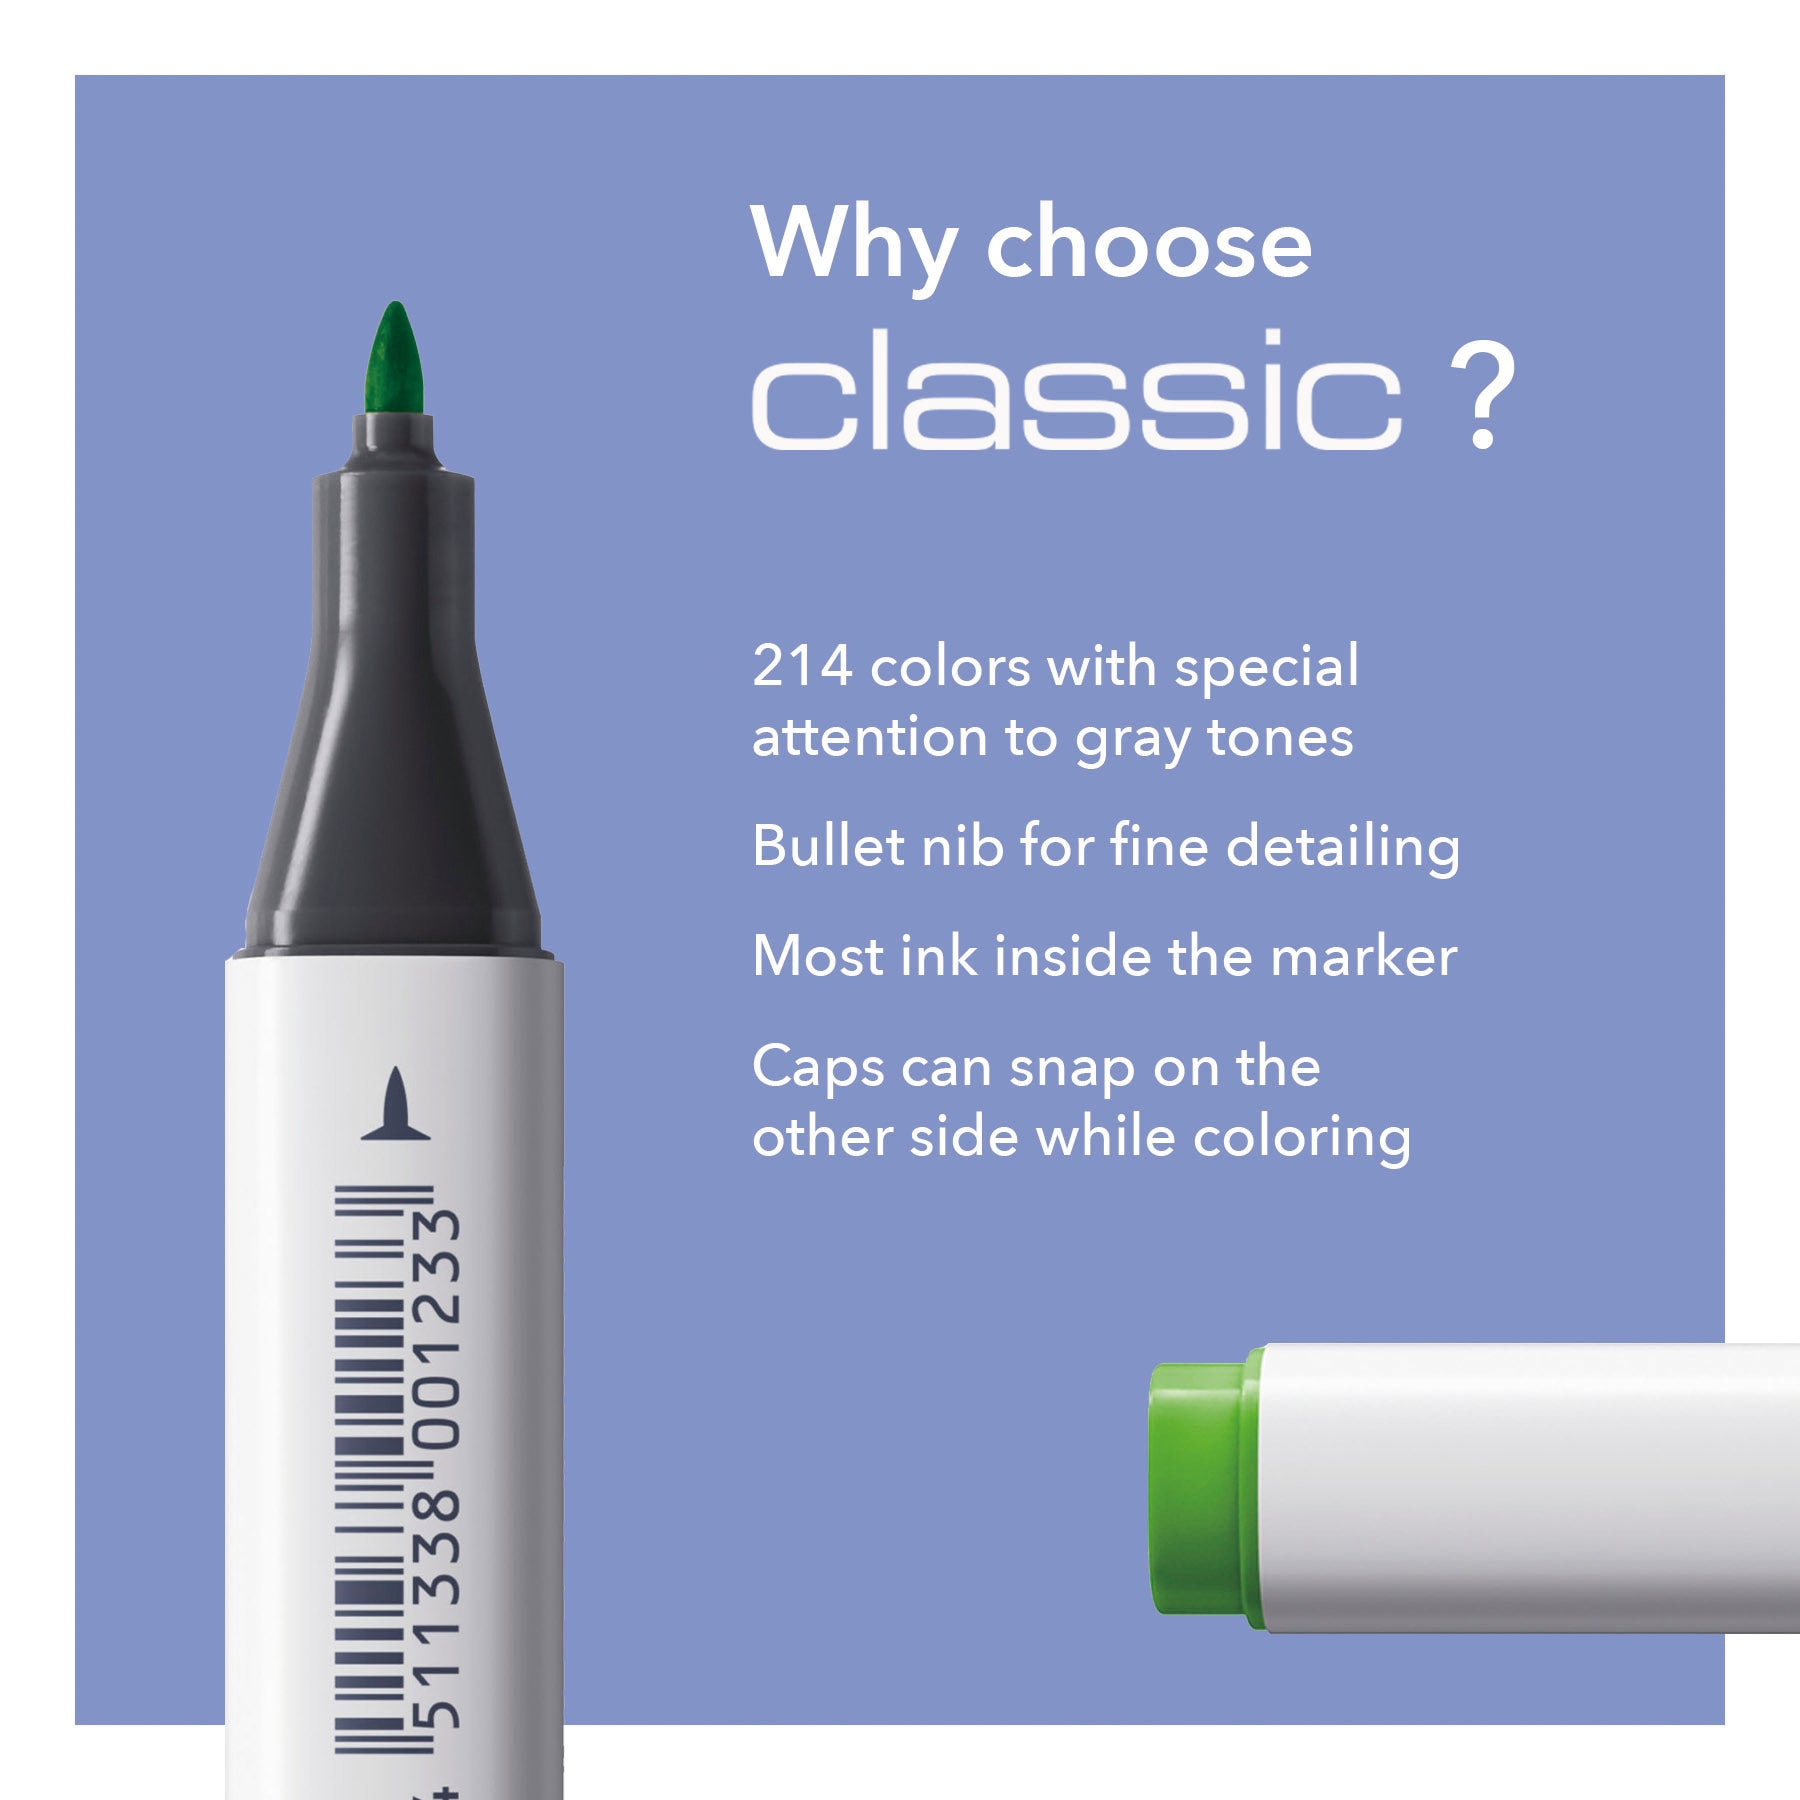 Why choose classic? 214 color with special attention to gray tones, Bullet nib for fine detailing, Most ink inside the marker, Caps can snap on the other side while coloring